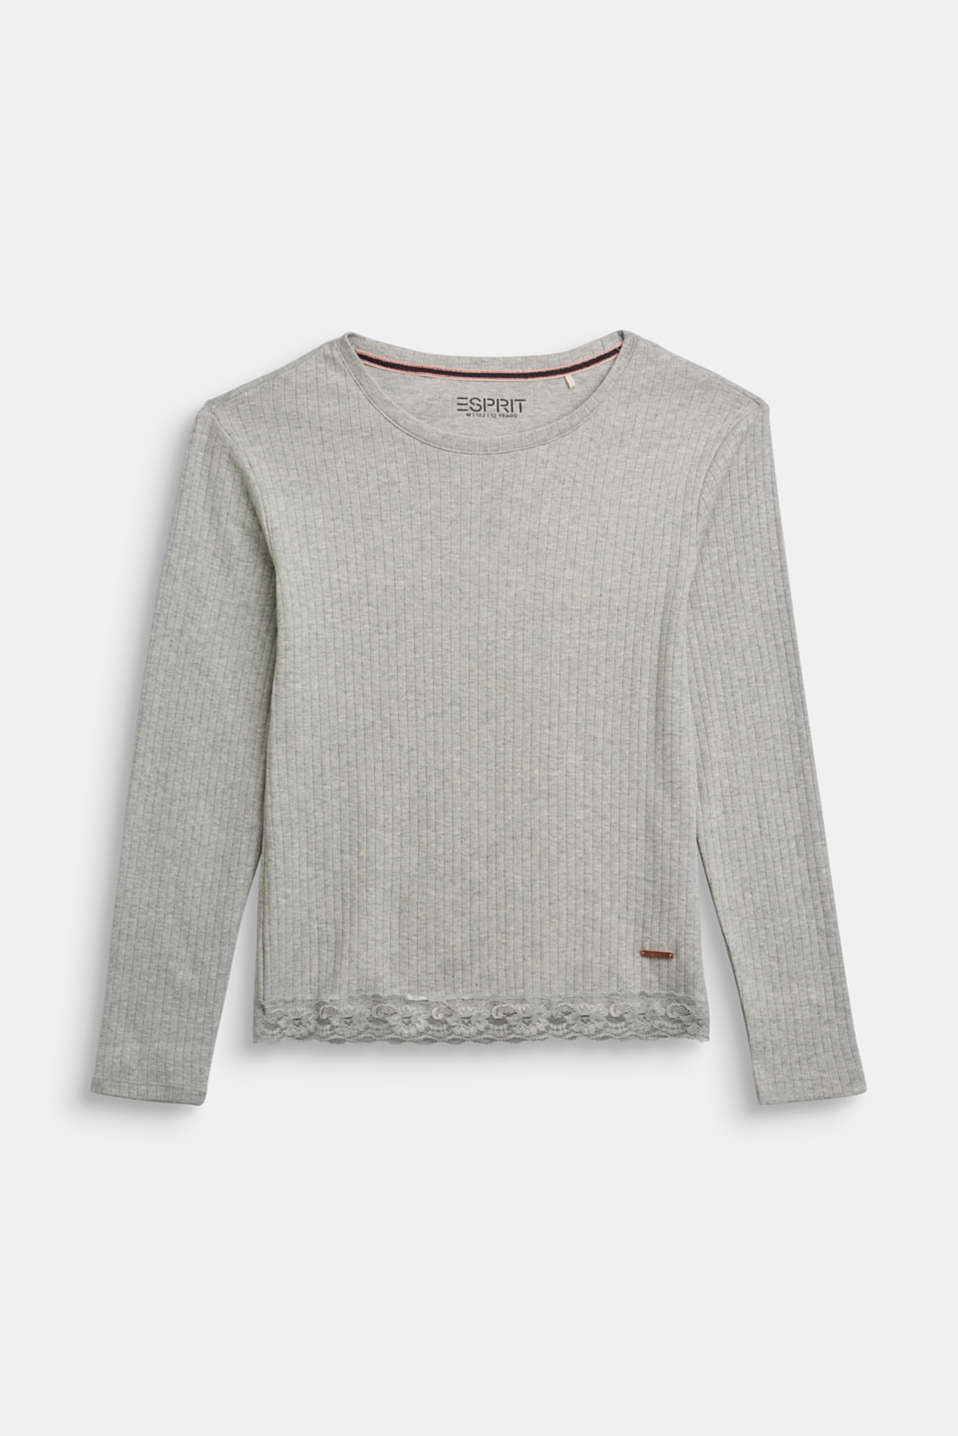 Esprit - Ribbed long sleeve top with a lace hem